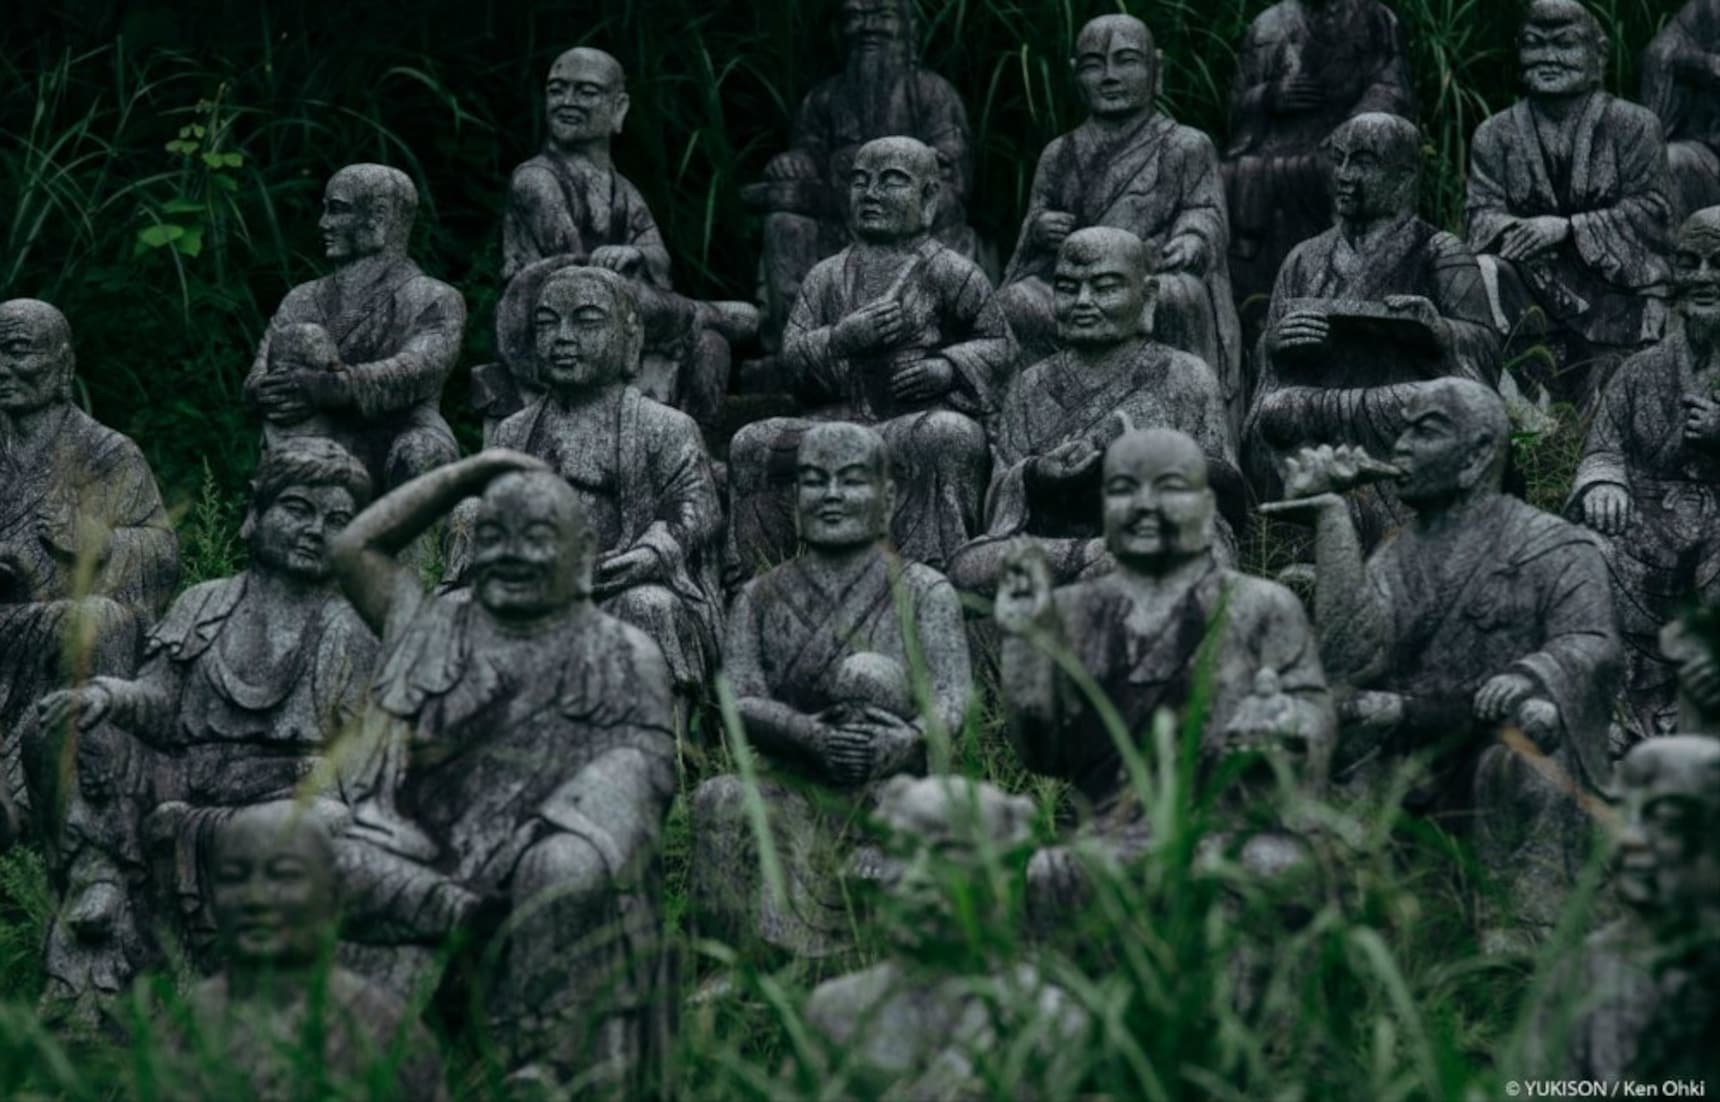 Visit an Eerie Grove of Buddhist Statues